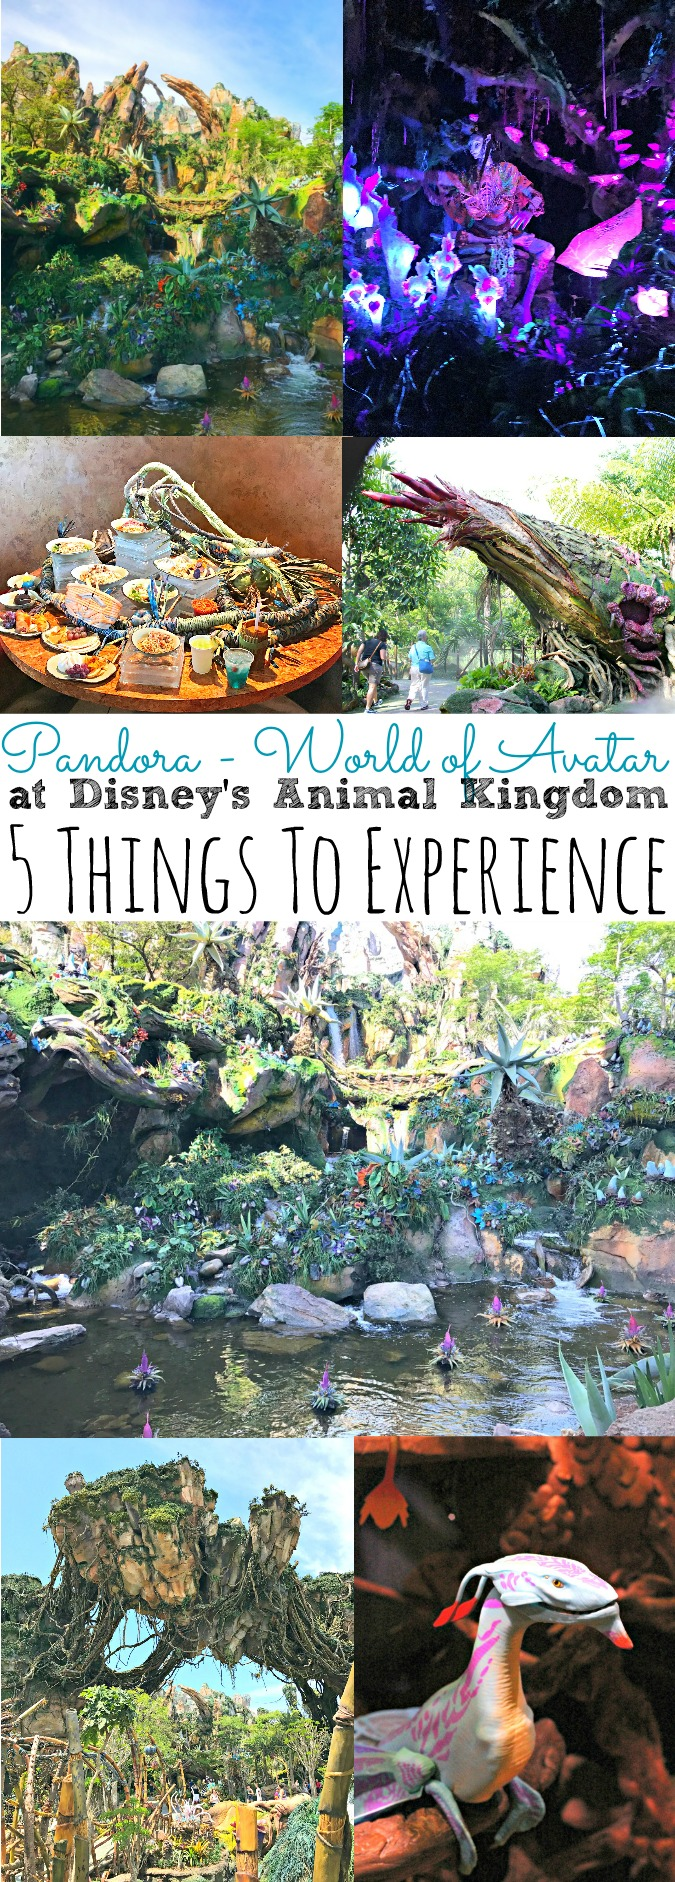 Pandora World of Avatar 5 Things To Experience